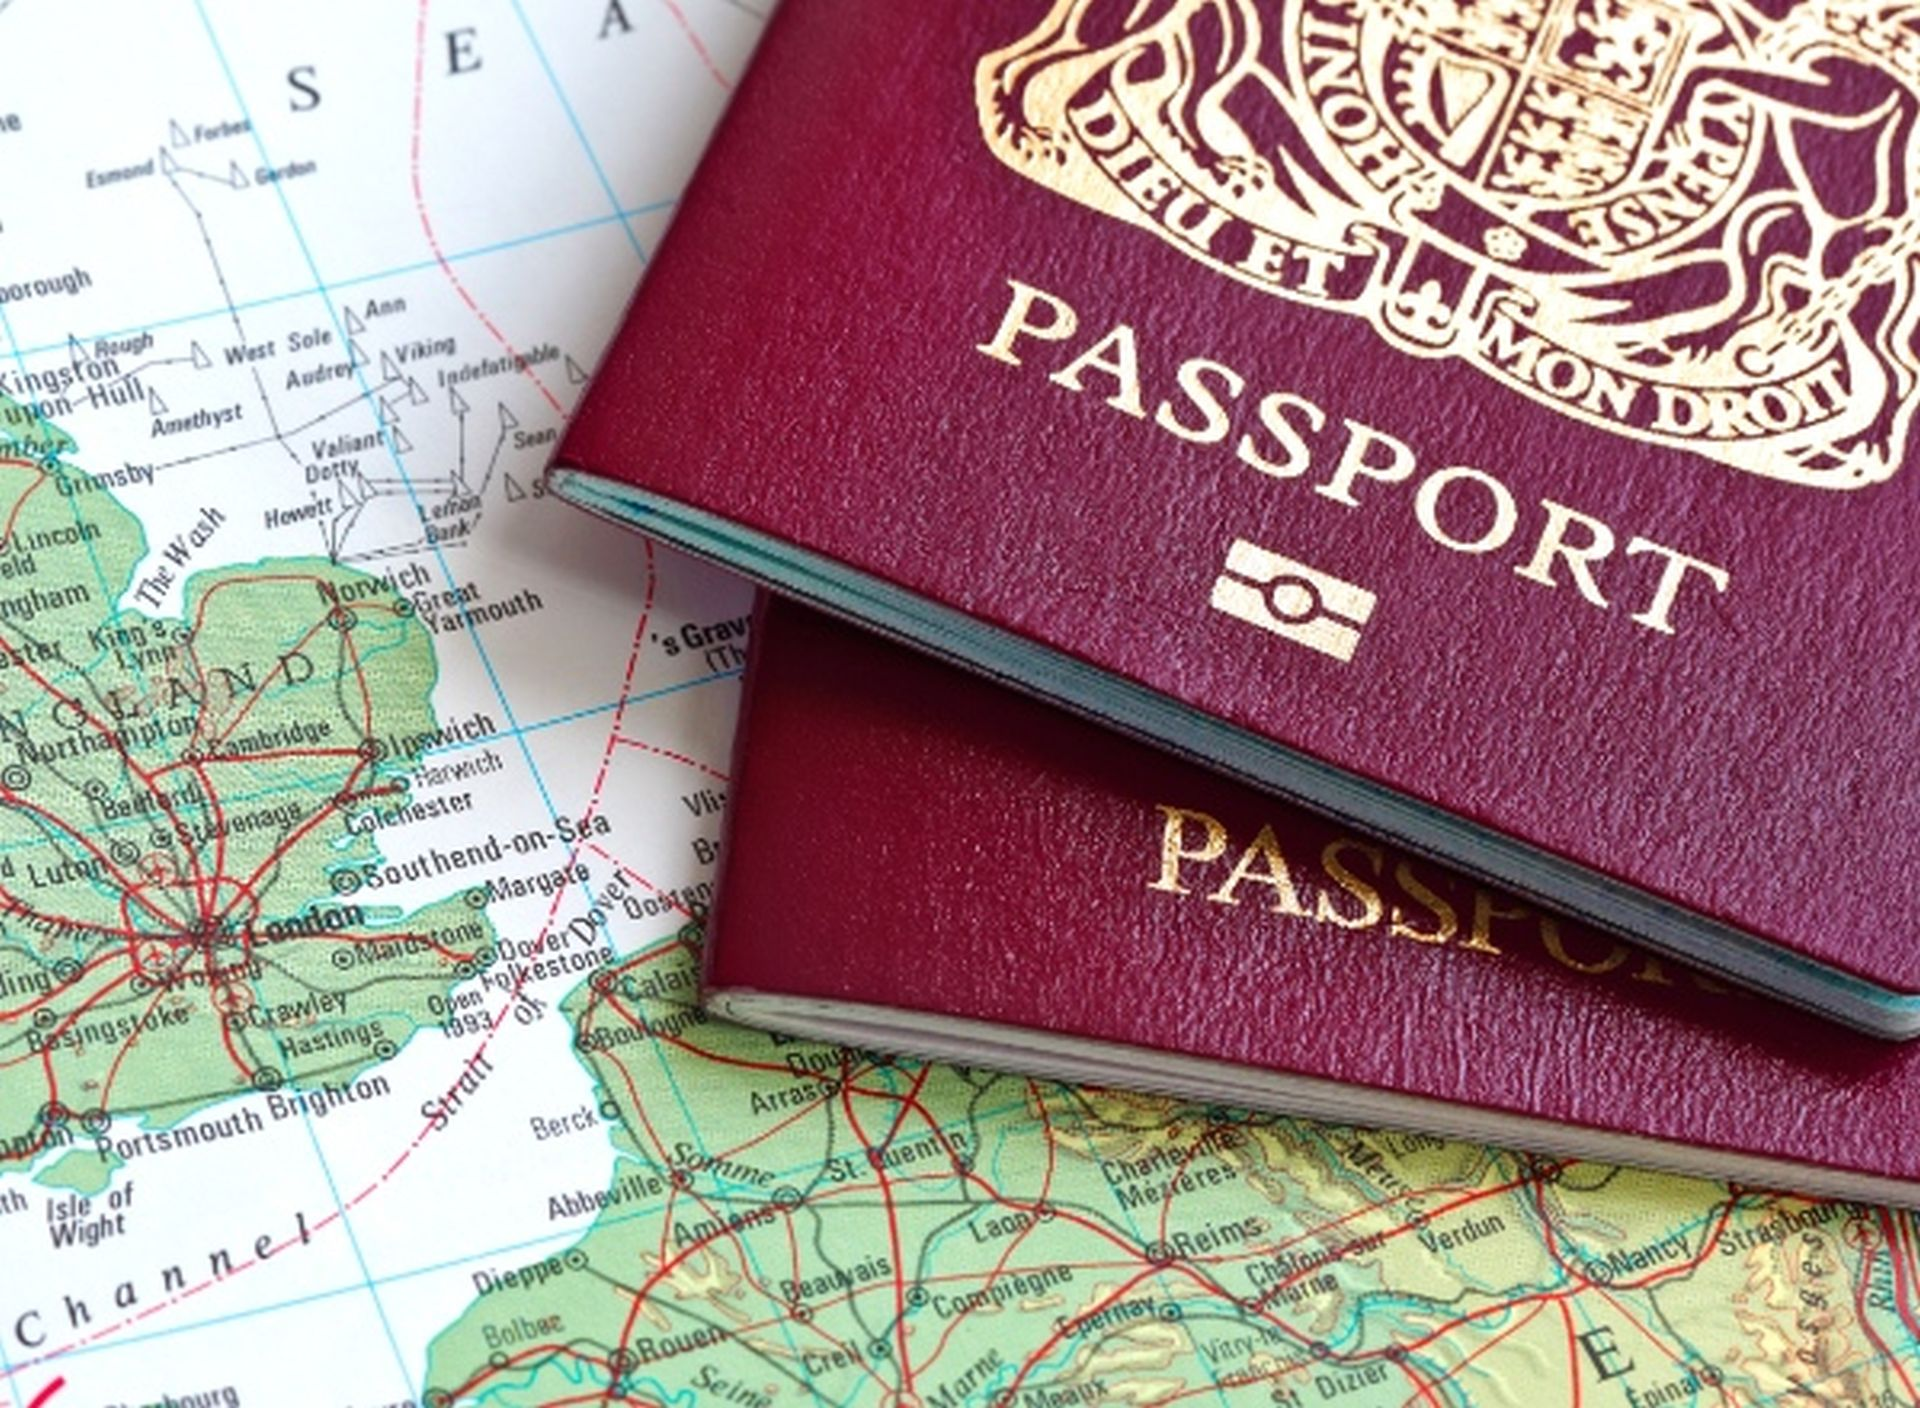 Want to work in Netherlands? Do you need the Netherlands work permit work?